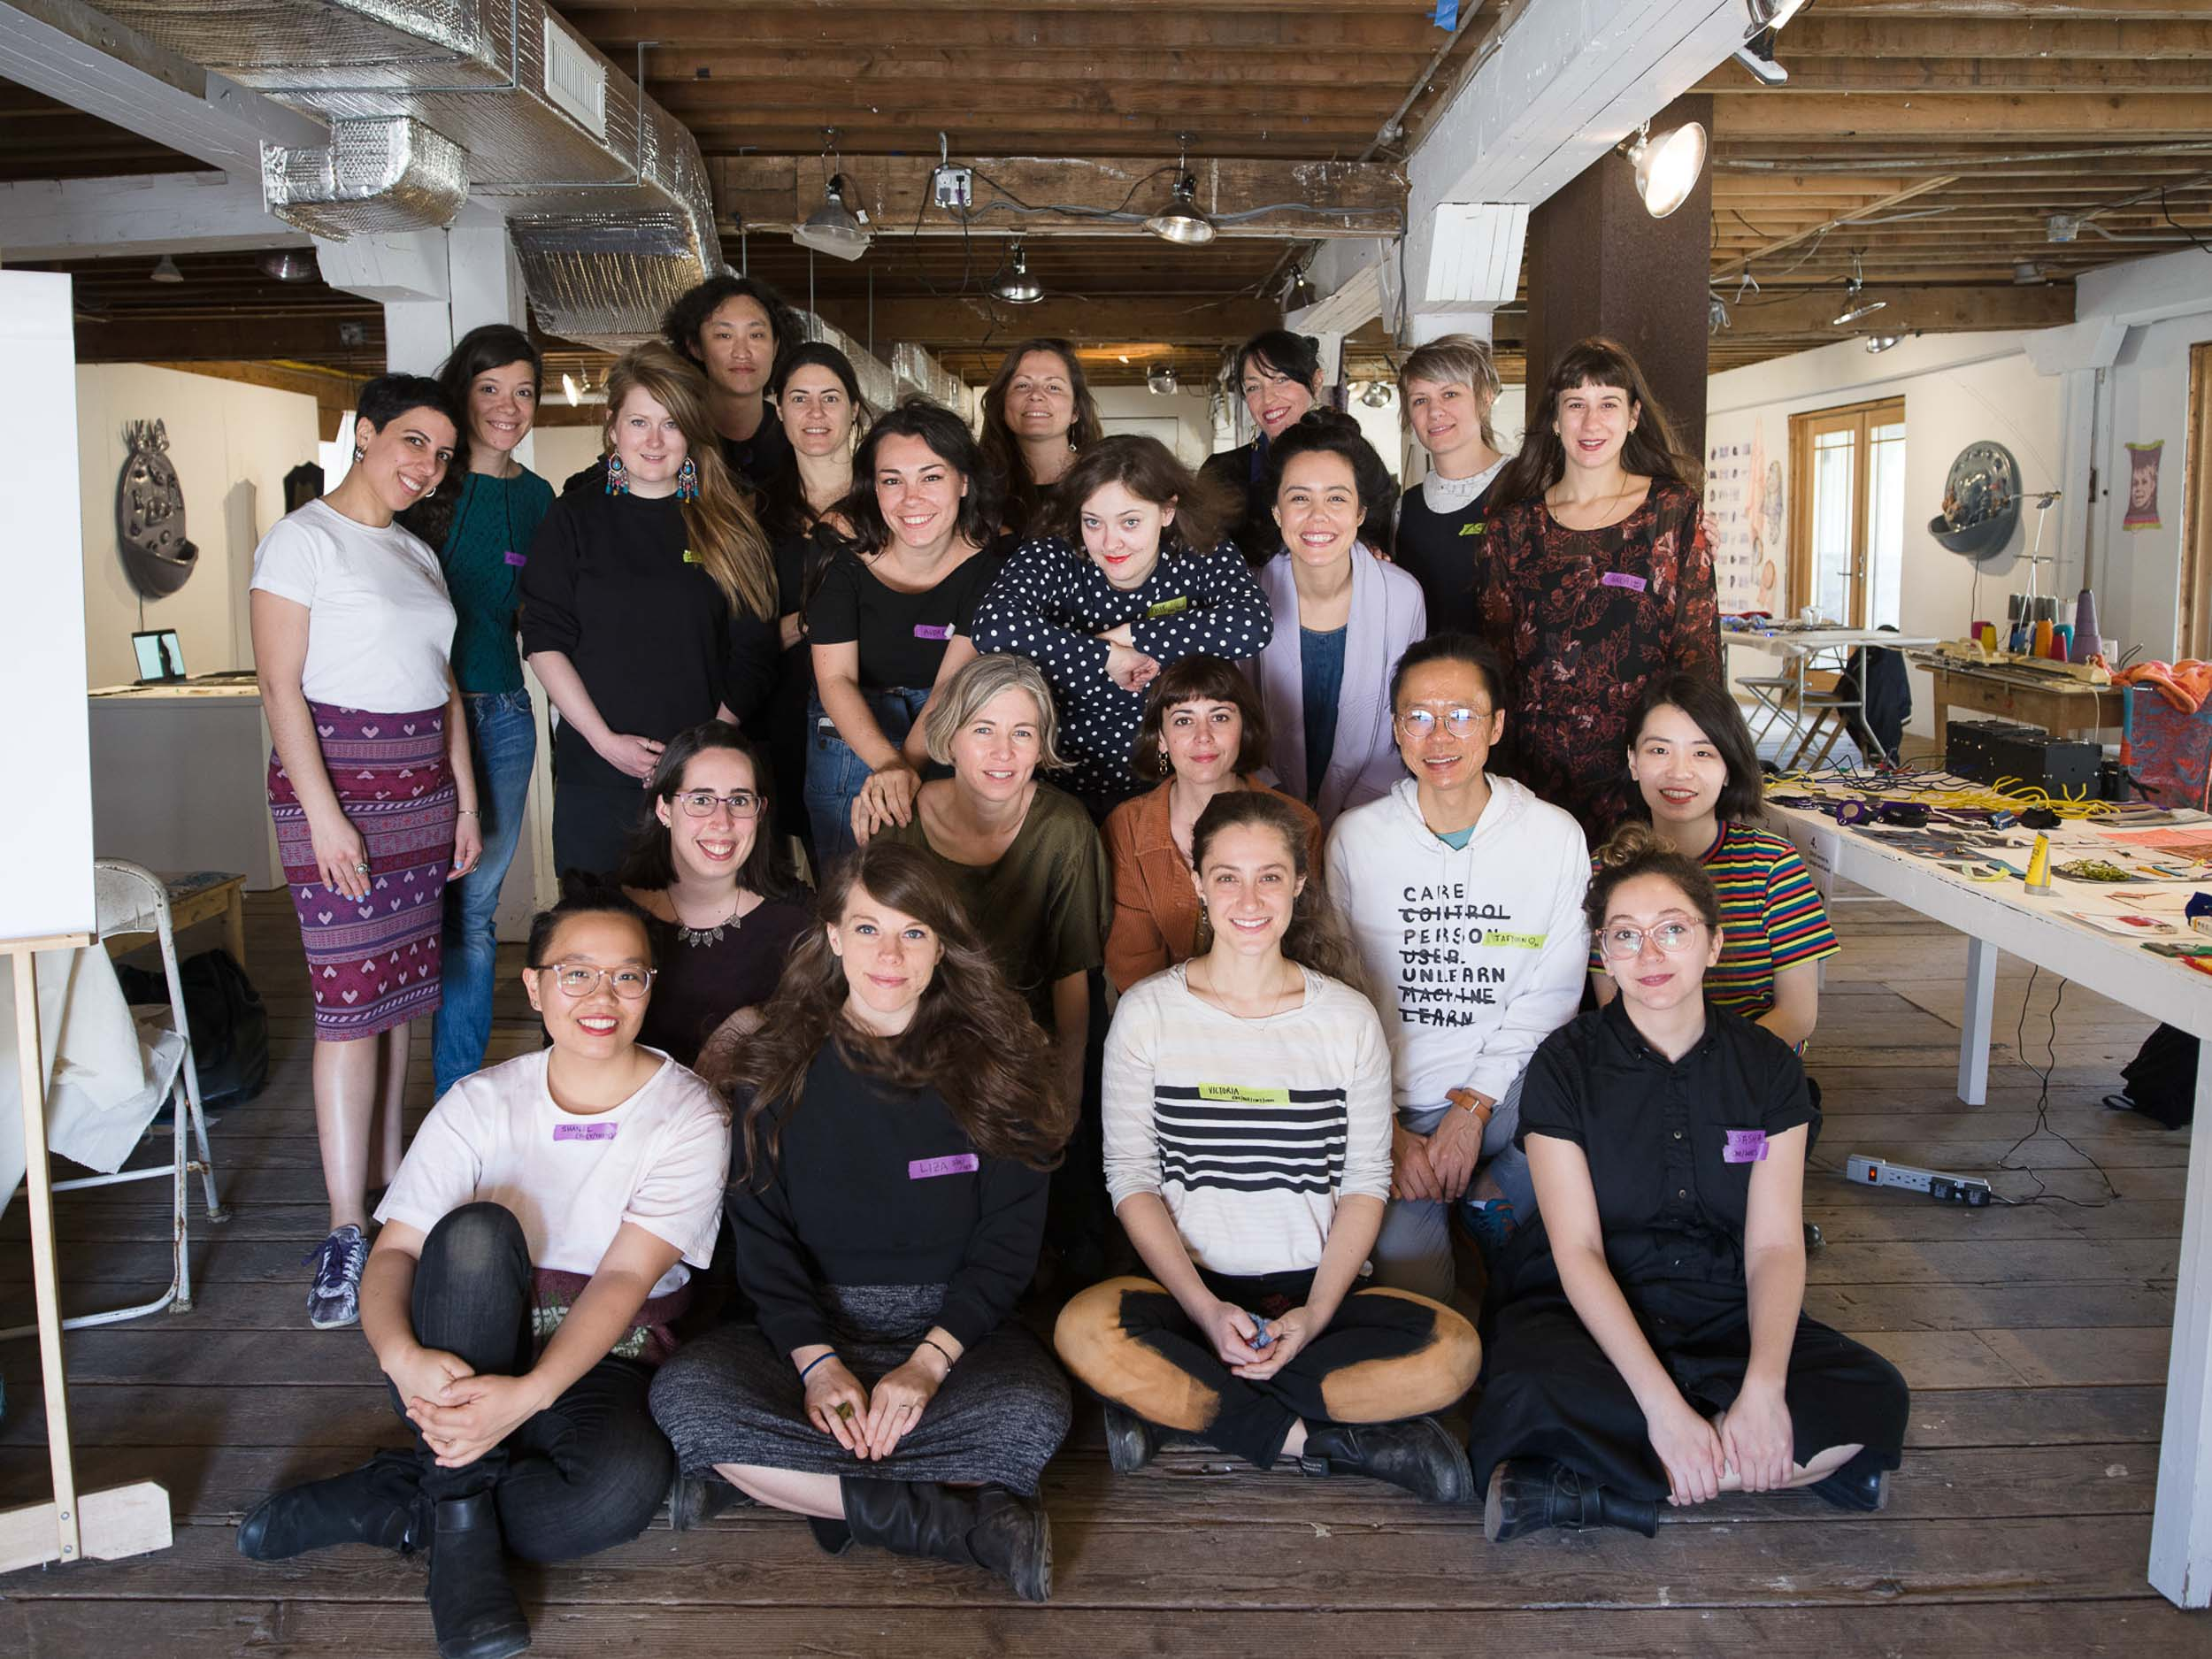 wassaic-project-education-etextiles-spring-break-community-social-2019-04-13-13-47-26.jpg